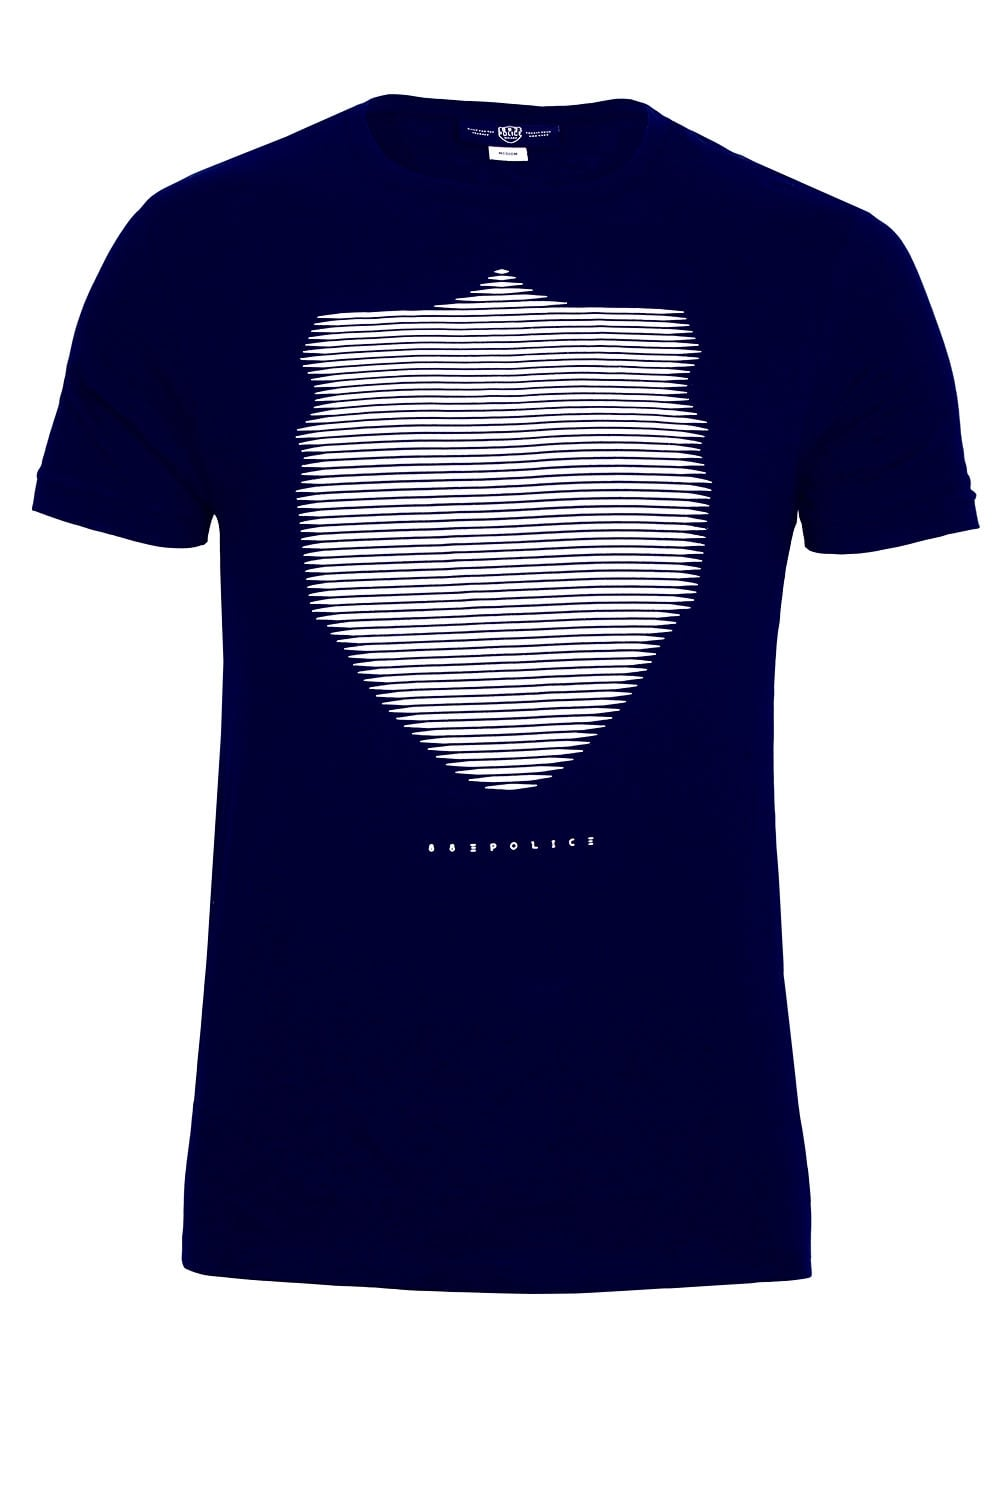 883 Police Wolf Graphic Print Navy T Shirt Shop 883